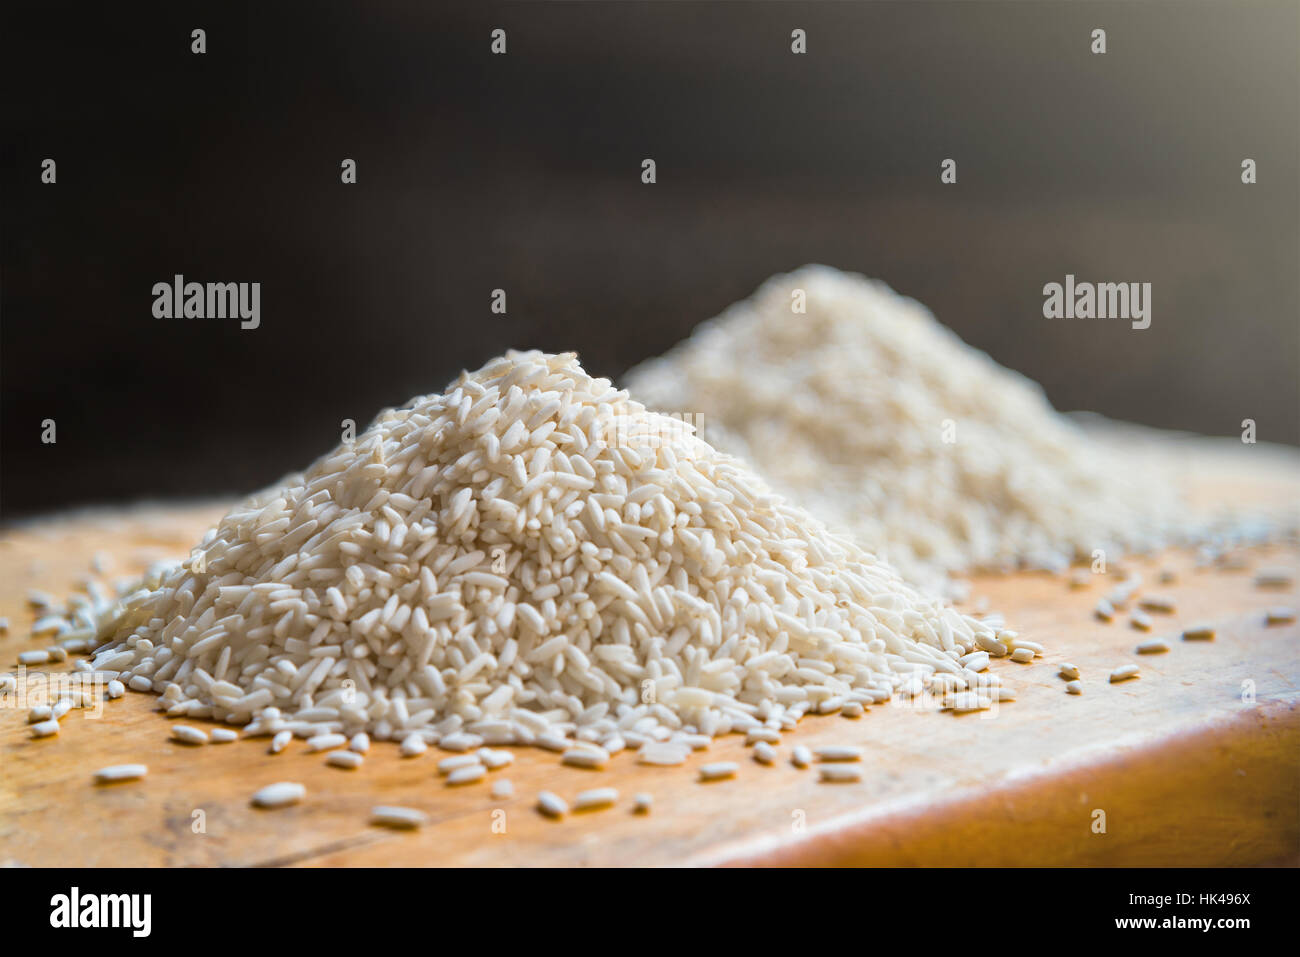 Two piles of white rice on wooden table background, metaphor ingredient, nutrition, carbohydrate food, agriculture - Stock Image